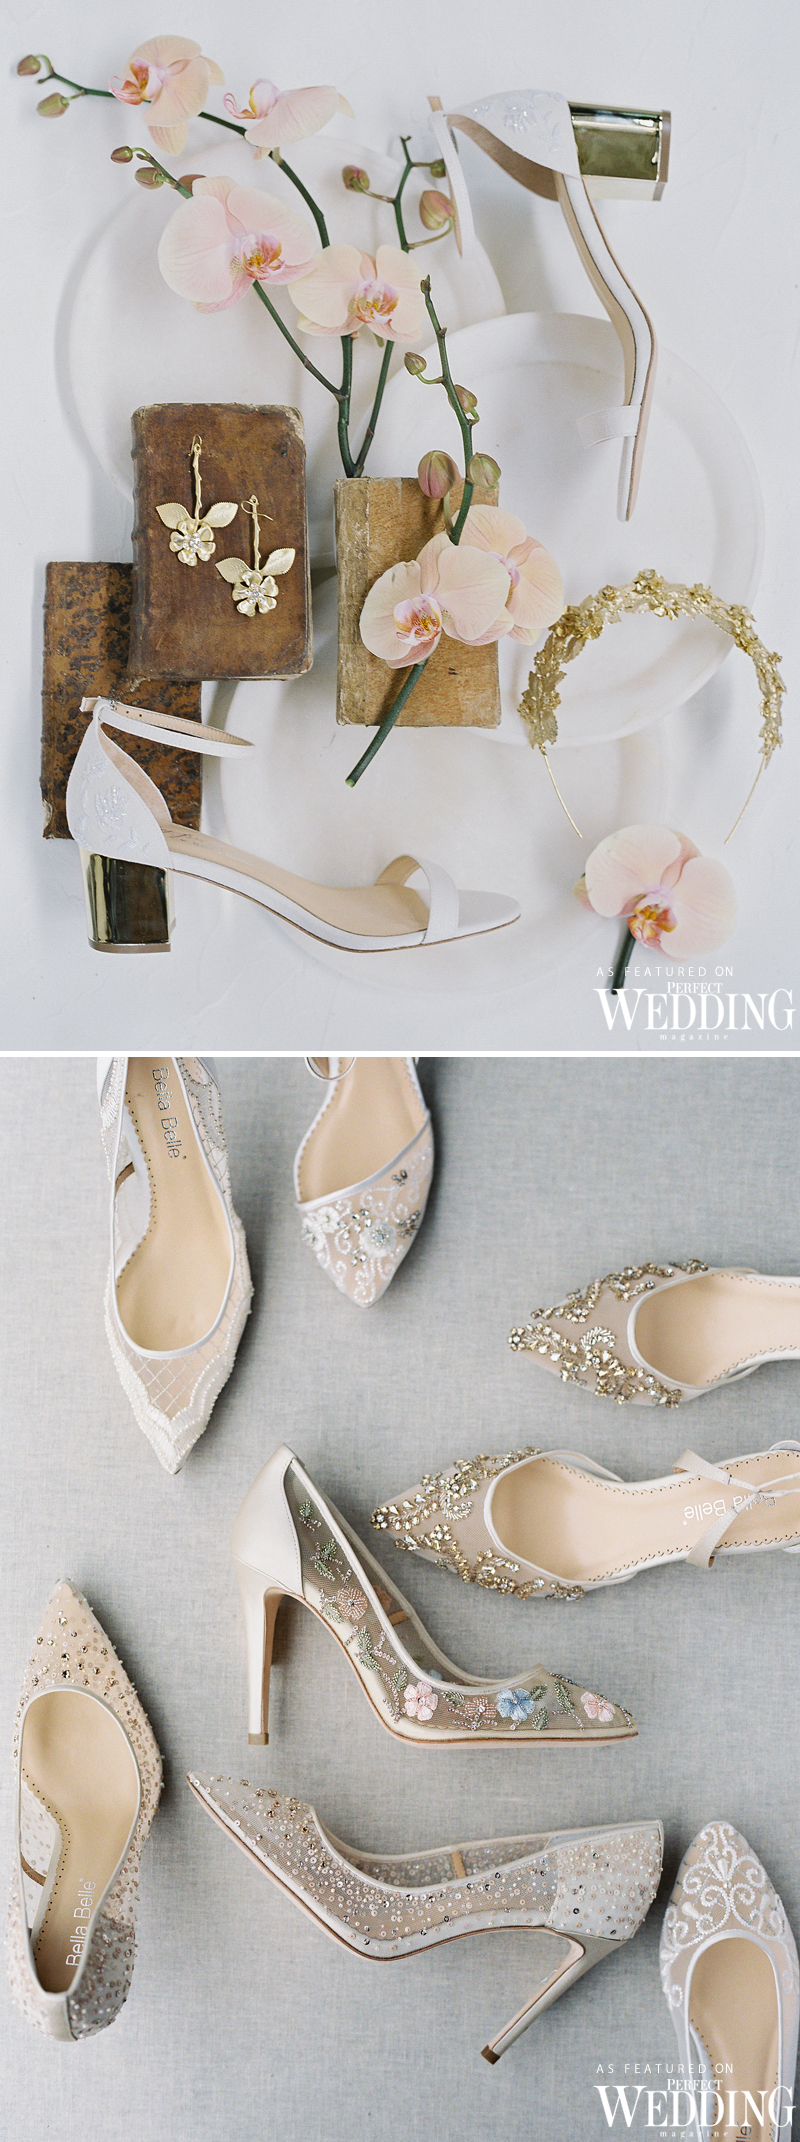 Bella Belle Shoes, Bella Belle Euphoria, Bella Belle 2018, Handmade Shoes, Bridal Shoes, Romantic Shoes, Perfect Wedding Magazine, Perfect Wedding Blog, Bridal Fashion, Bridal look